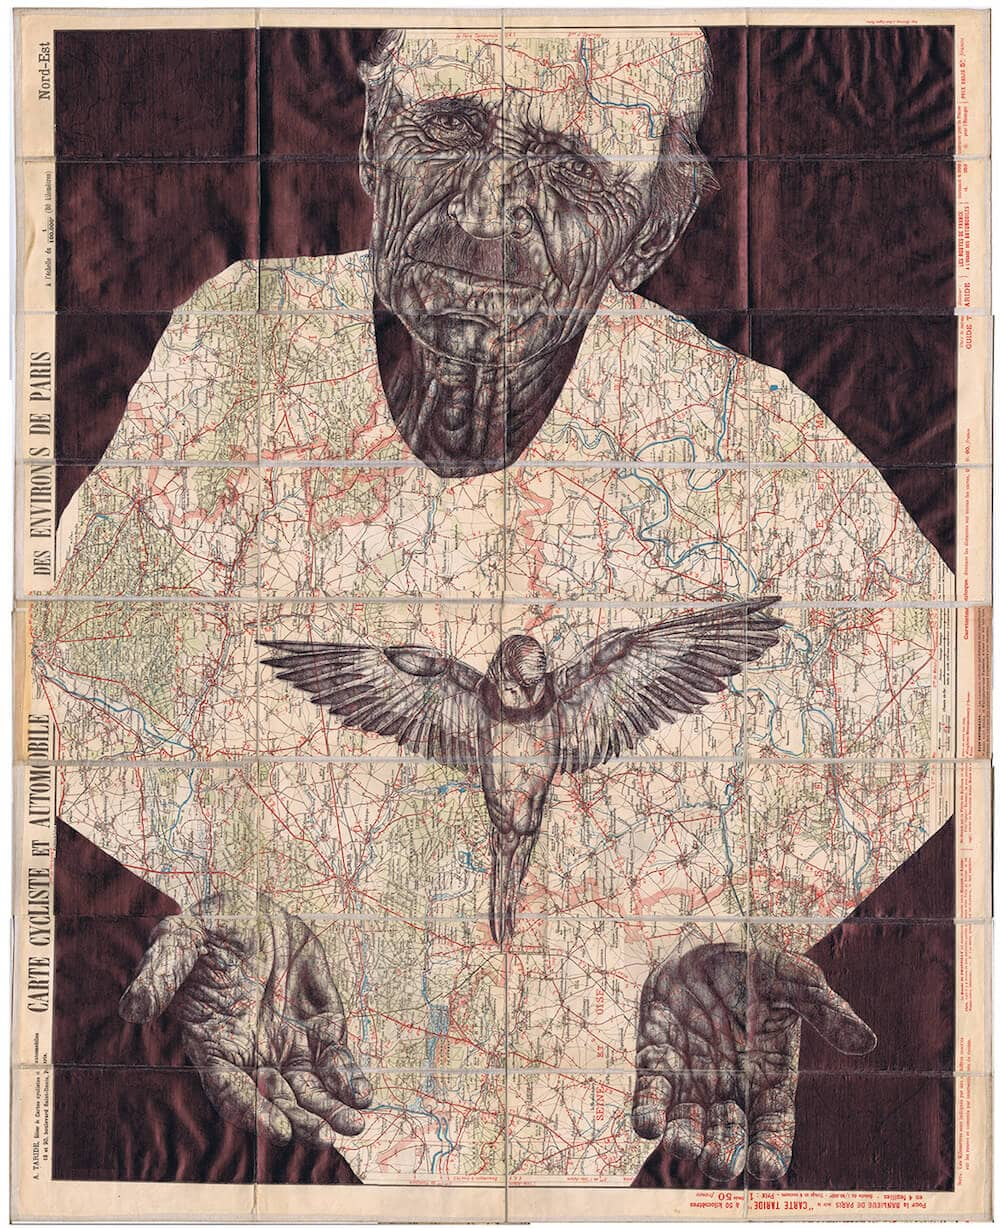 Ballpoint Pen Illustrations on Vintage Maps by Mark Powell -portraits, paper, maps, birds